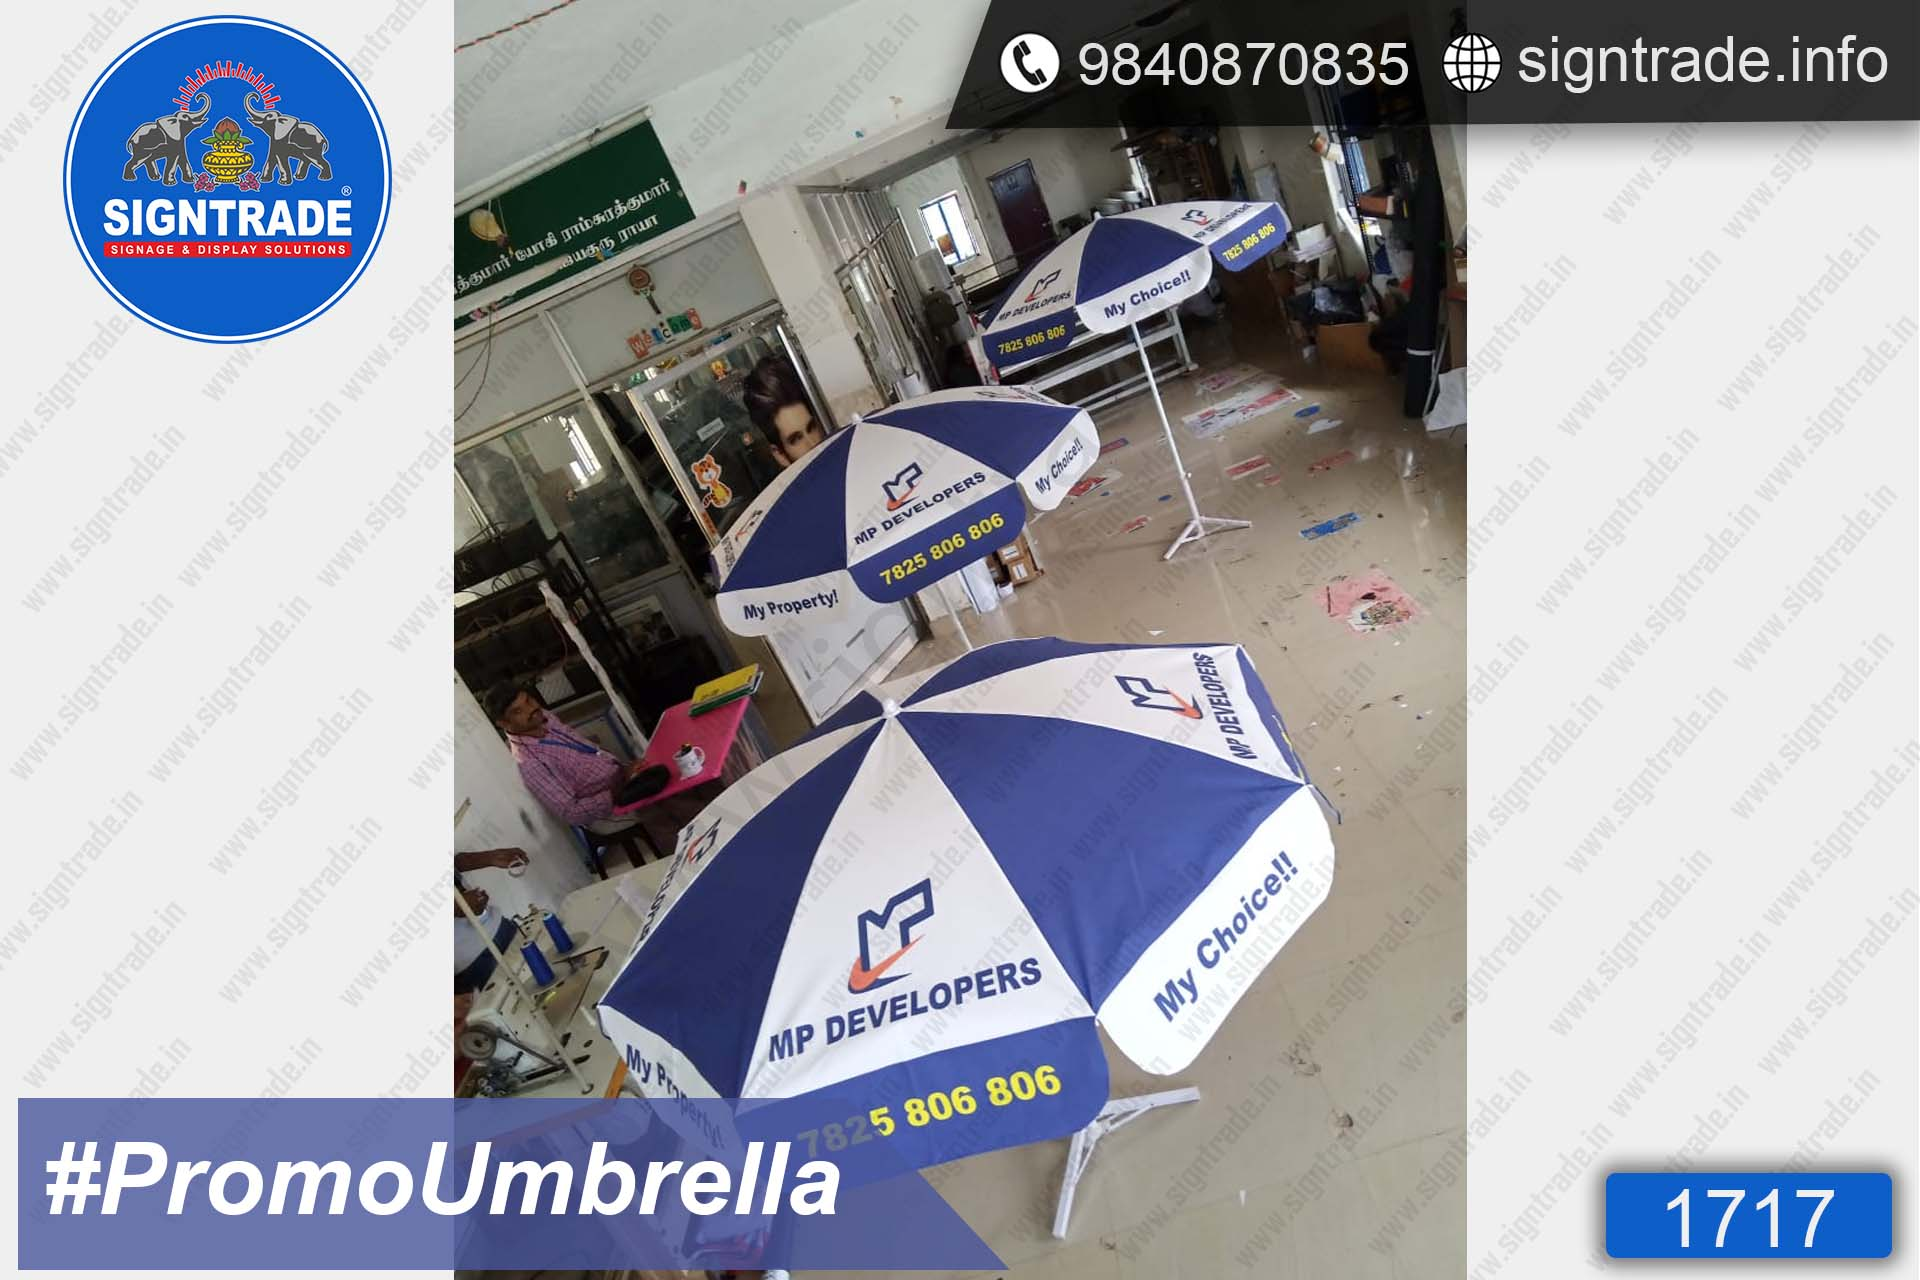 MP Developers, Chennai - SIGNTRADE - Promotional Umbrella Manufactures in Chennai